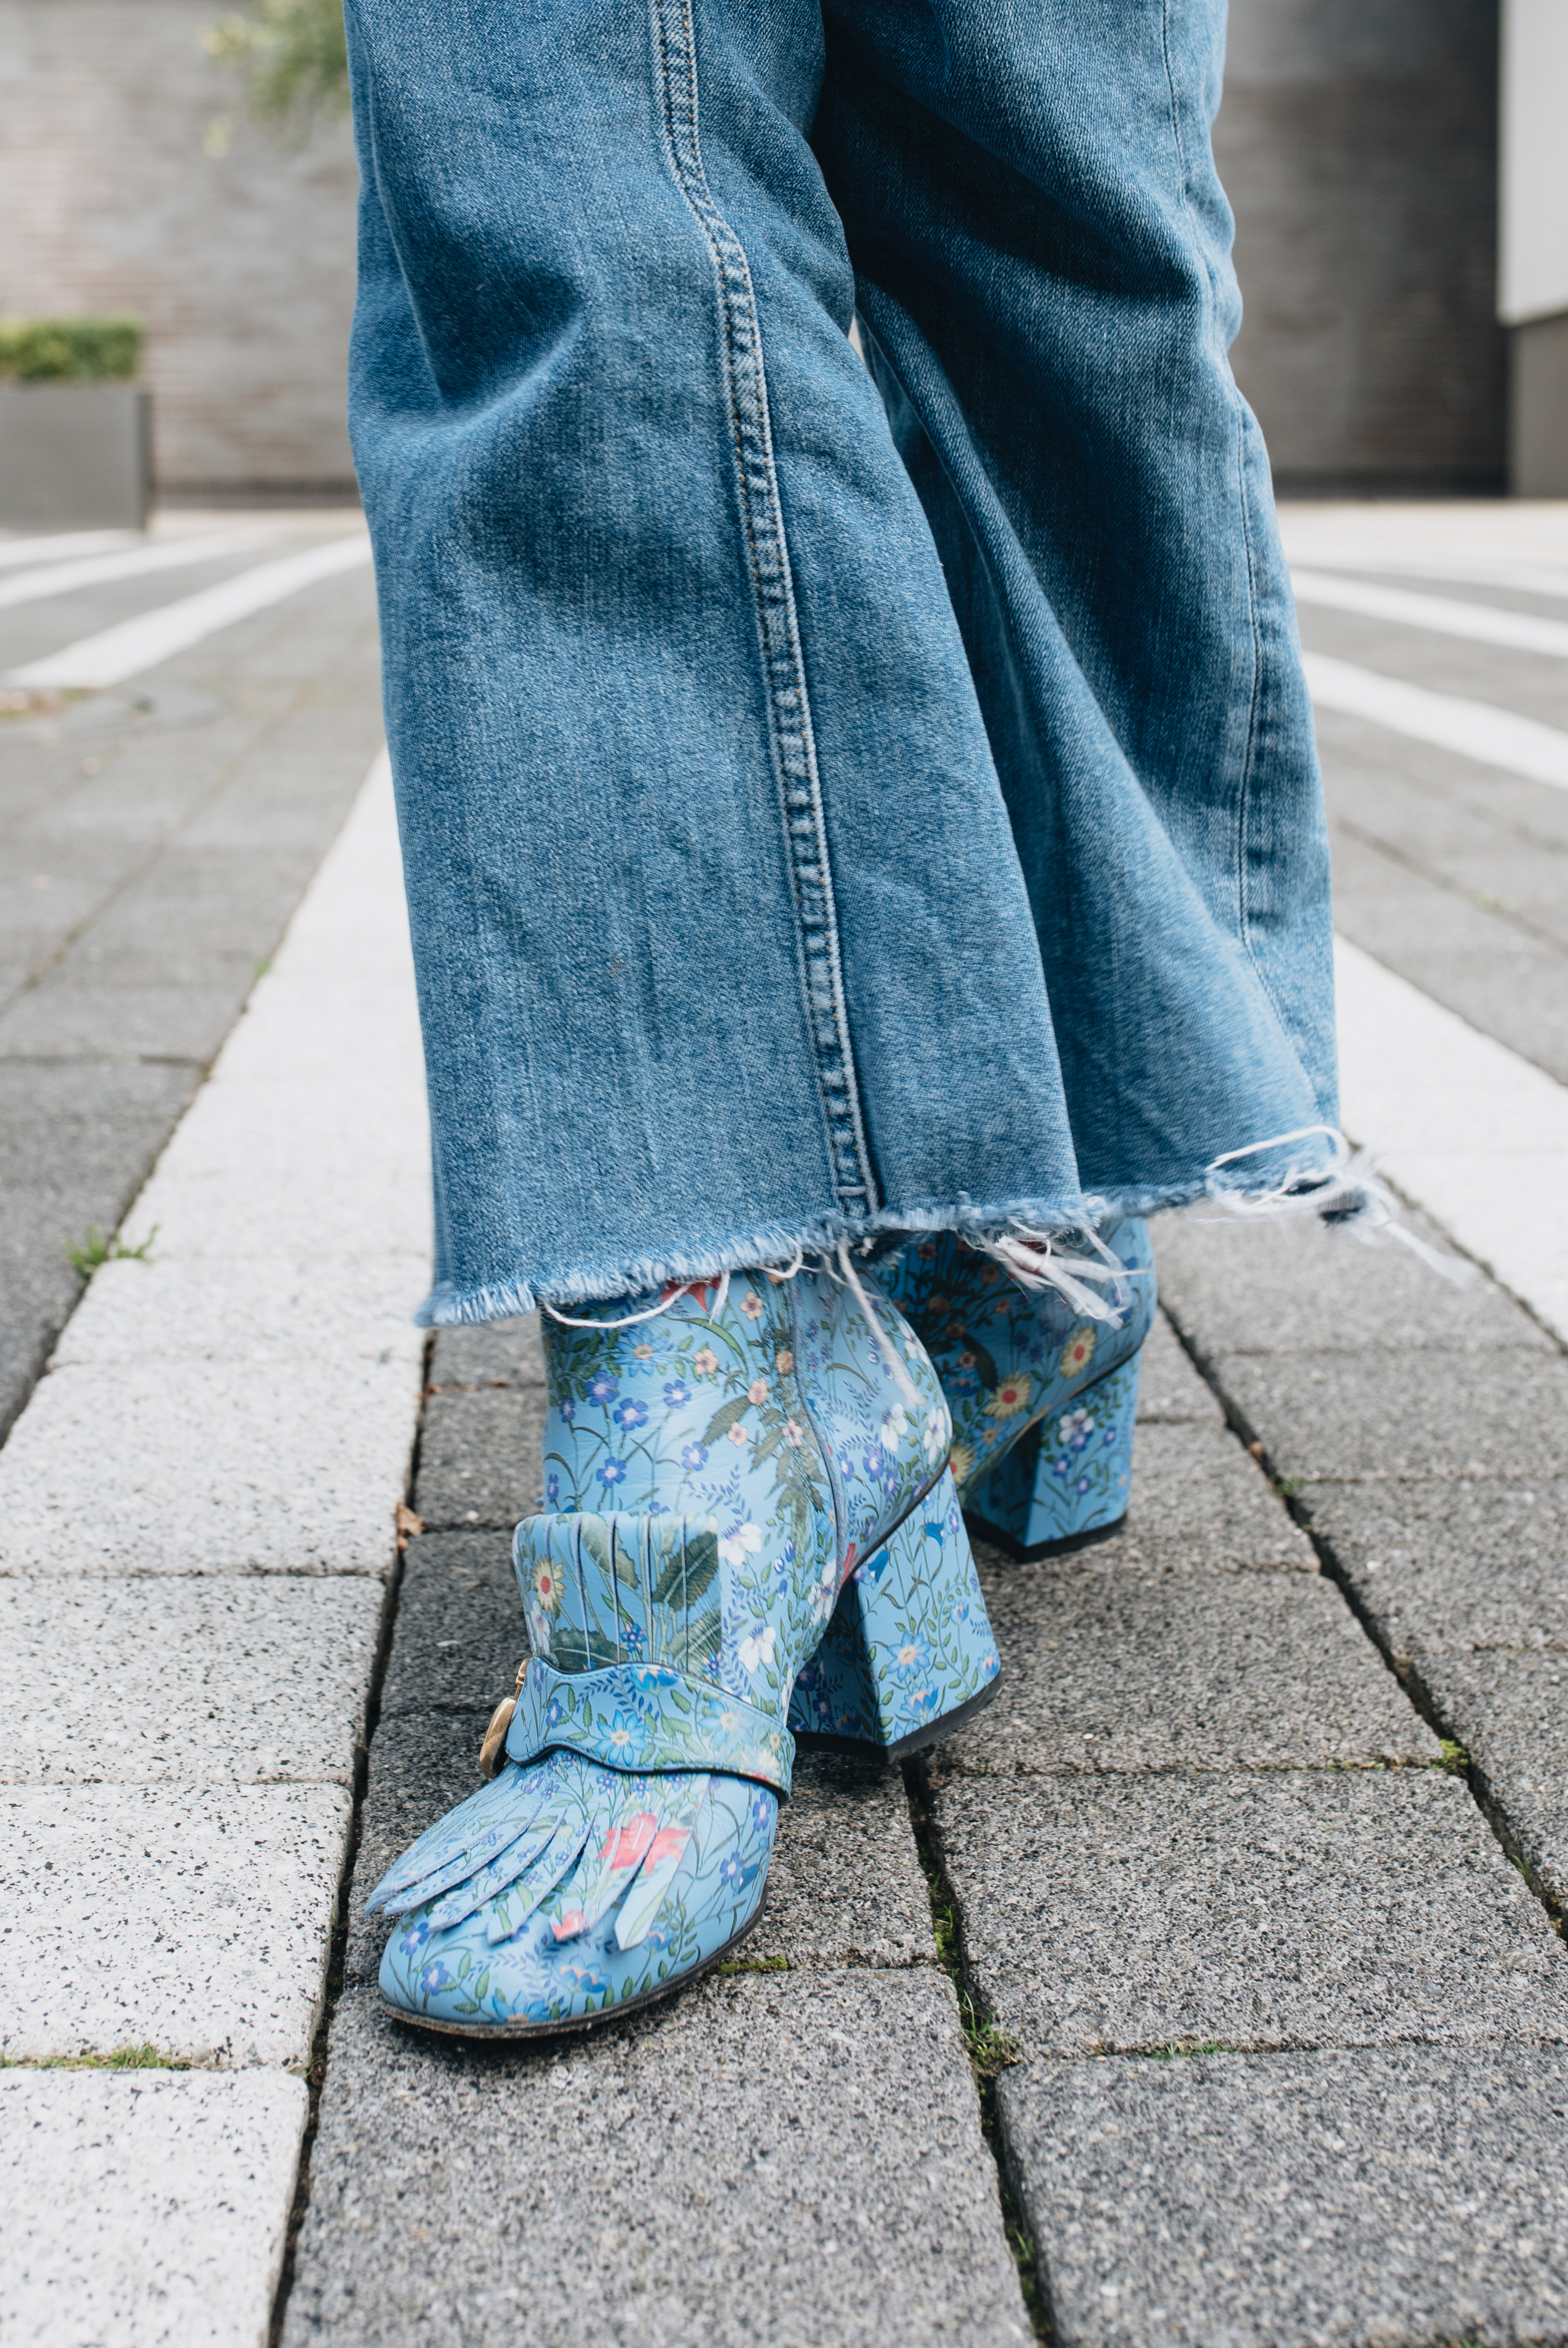 MEGAN ELLABY HOW TO WEAR GUCCI BOOTS